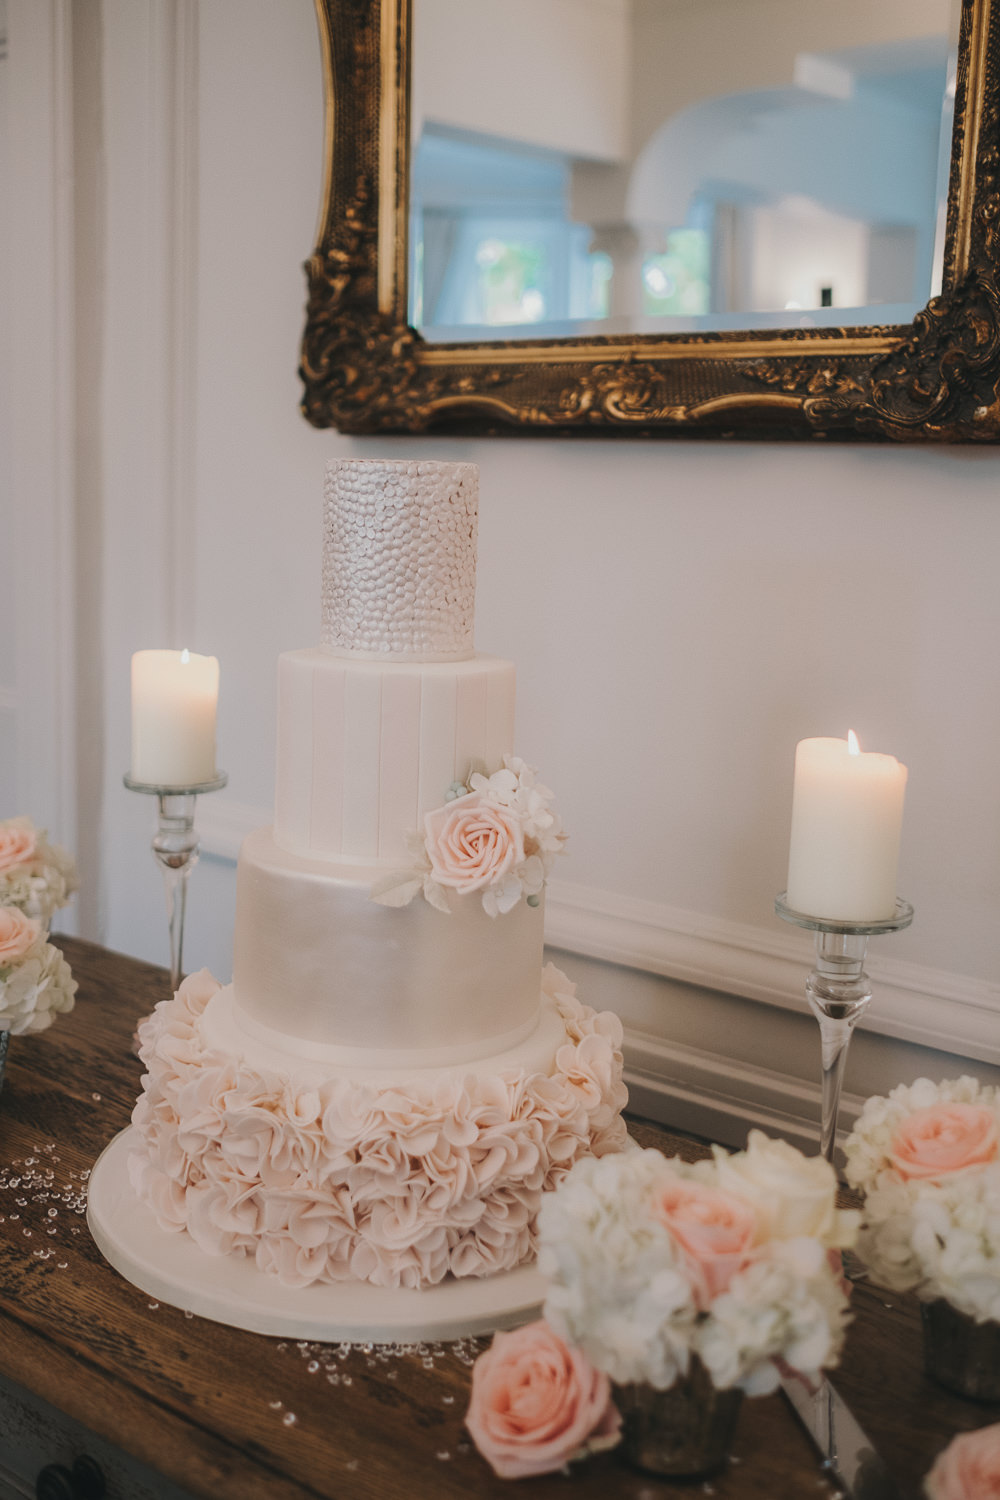 Dinner Reception Classic Elegant White Blush Cake Sugar Flowers | Ashfield House Wedding Kate McCarthy Photography